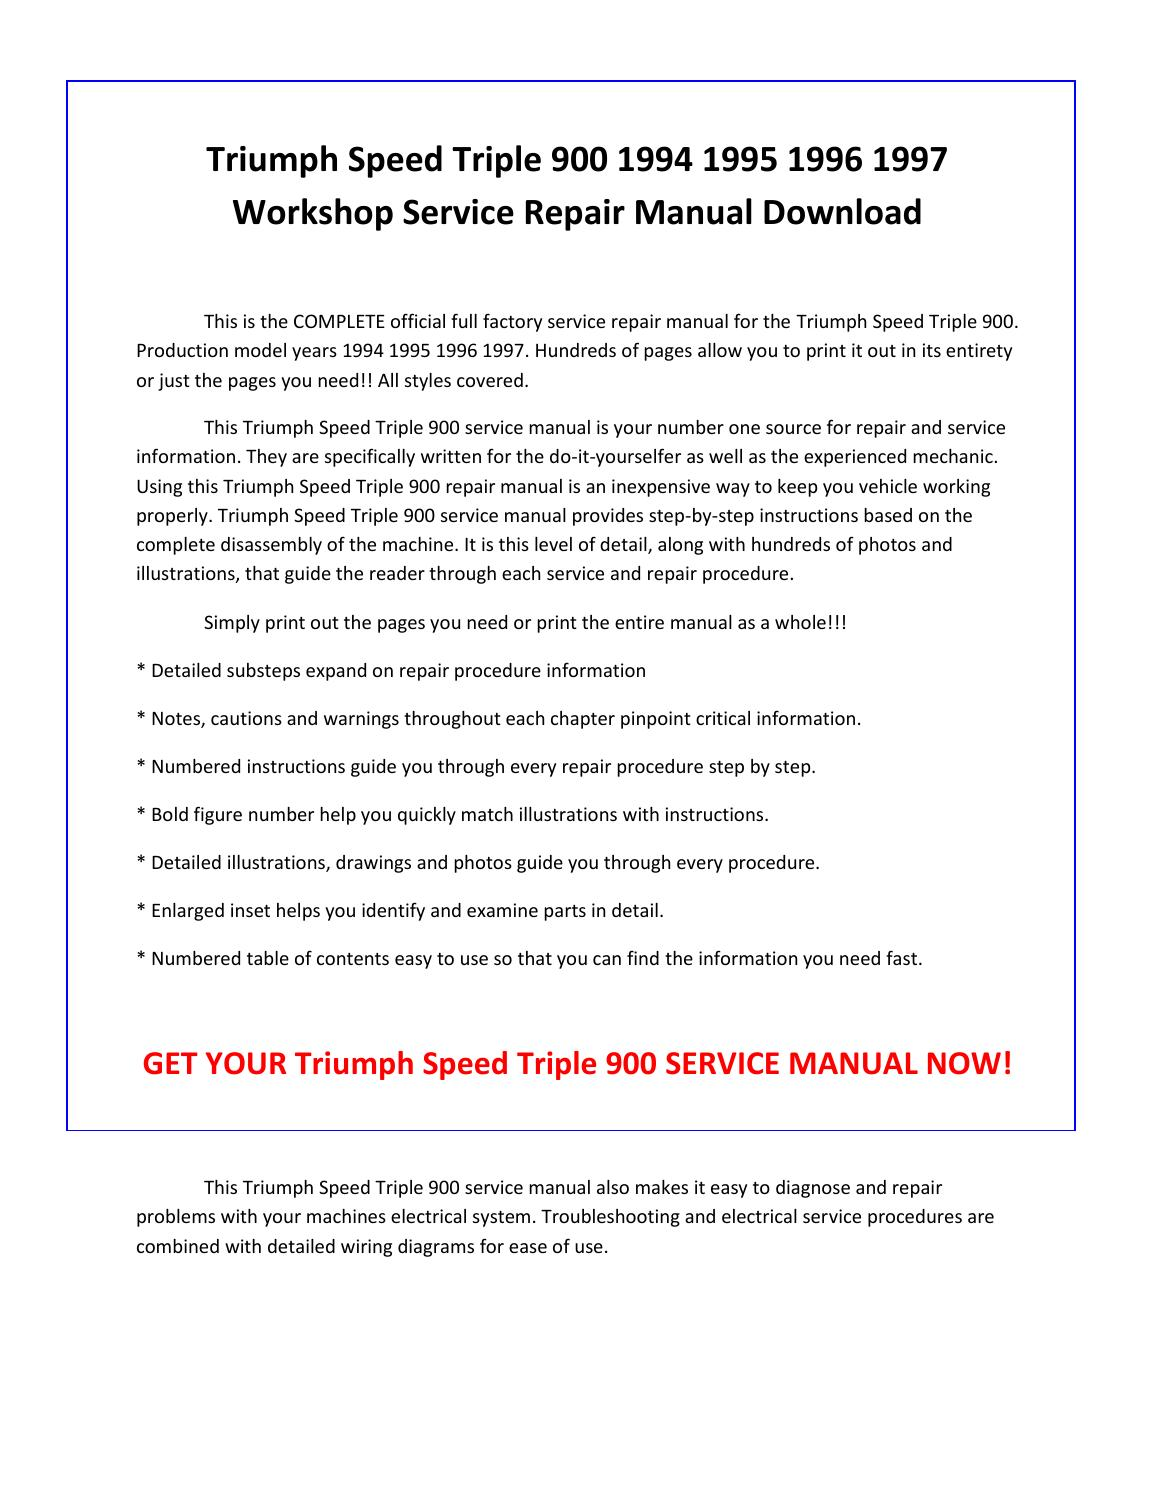 1995 triumph speed triple owners manual